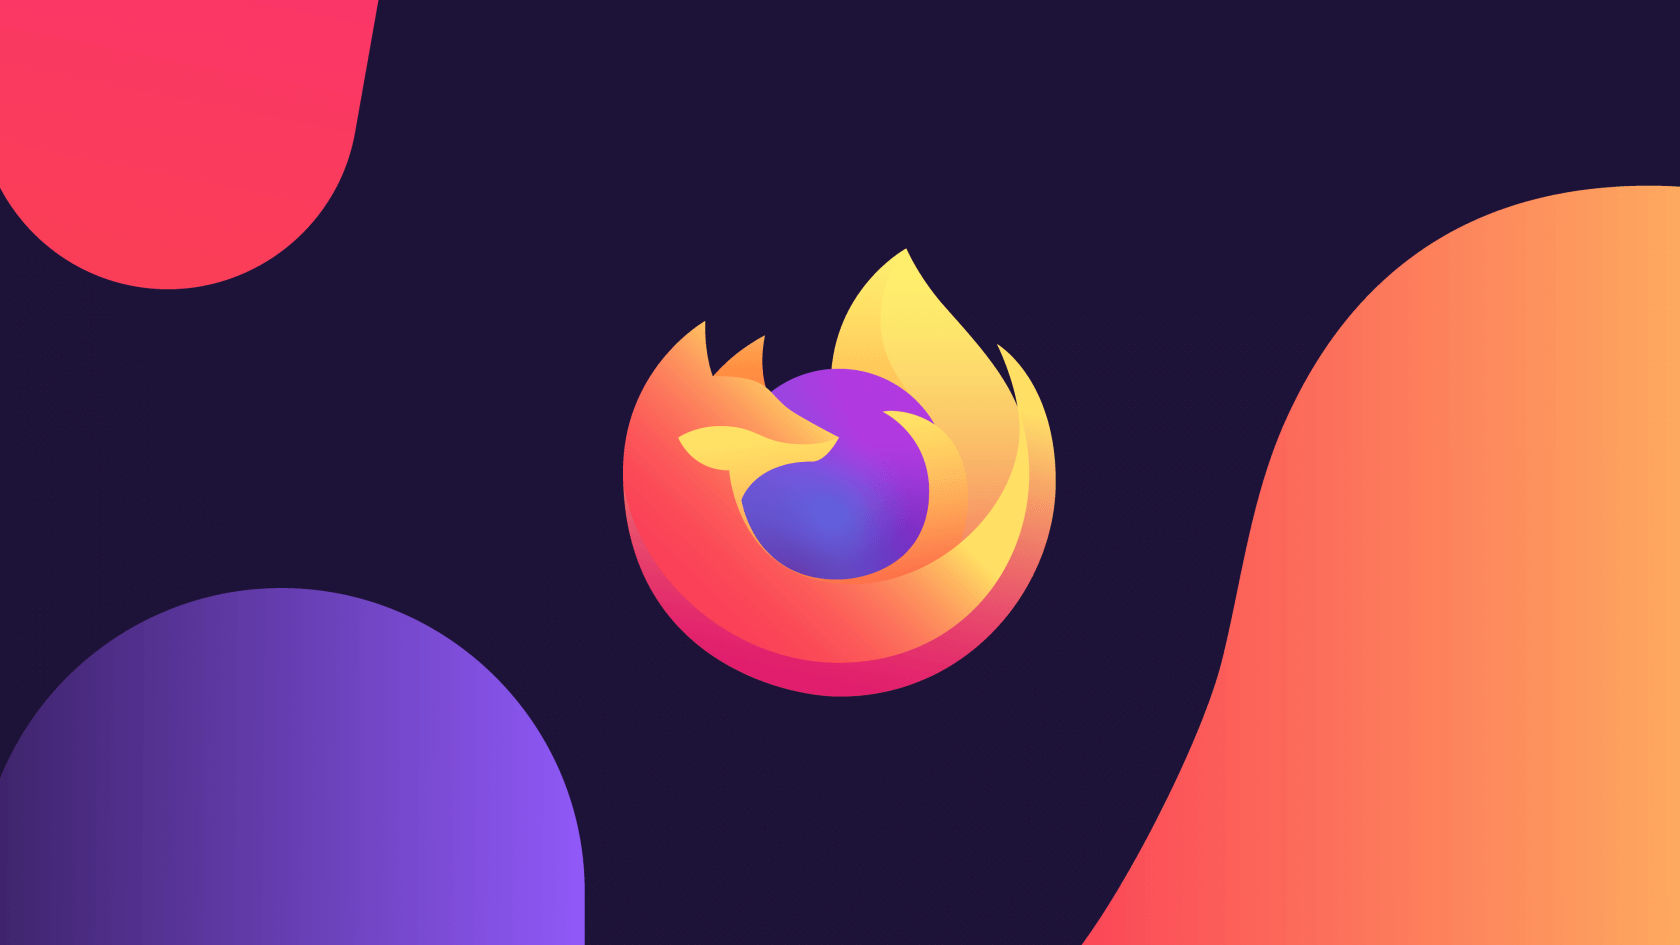 Mozilla temporarily shuts down Firefox Send in response to malware sharing concerns